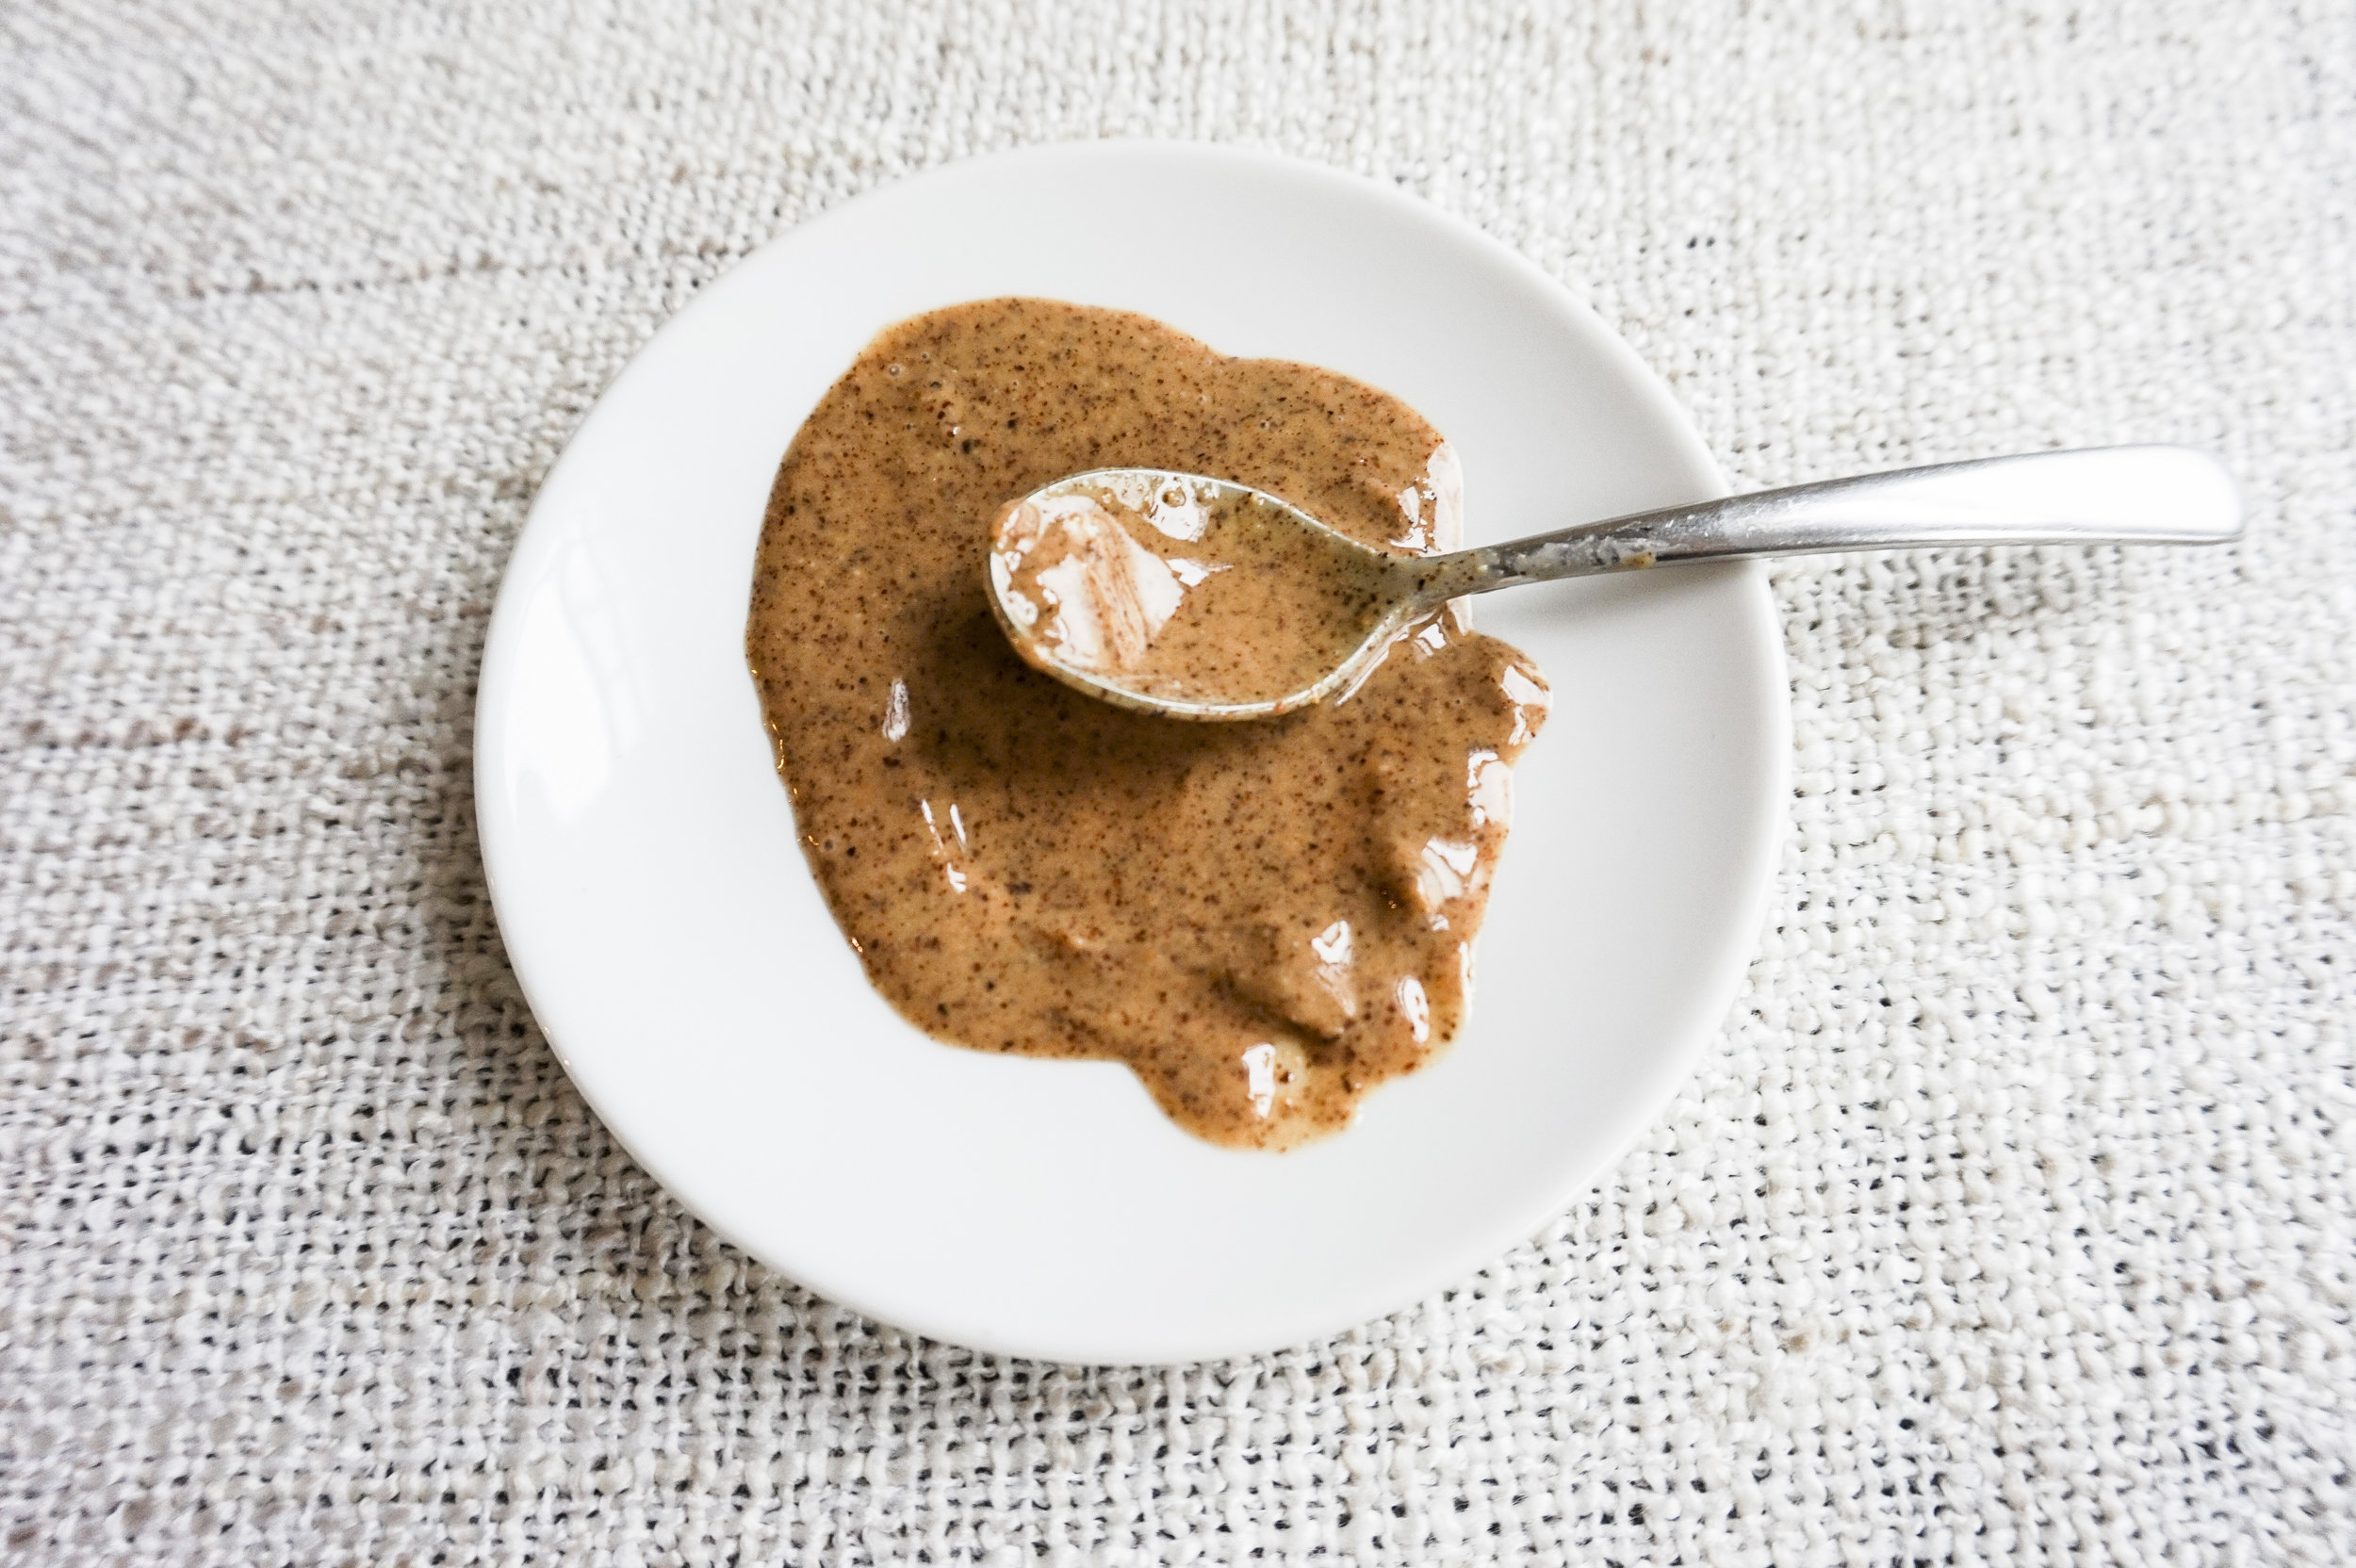 We prefer almond butter over peanut butter! Also you can make your own with a food processor at home.